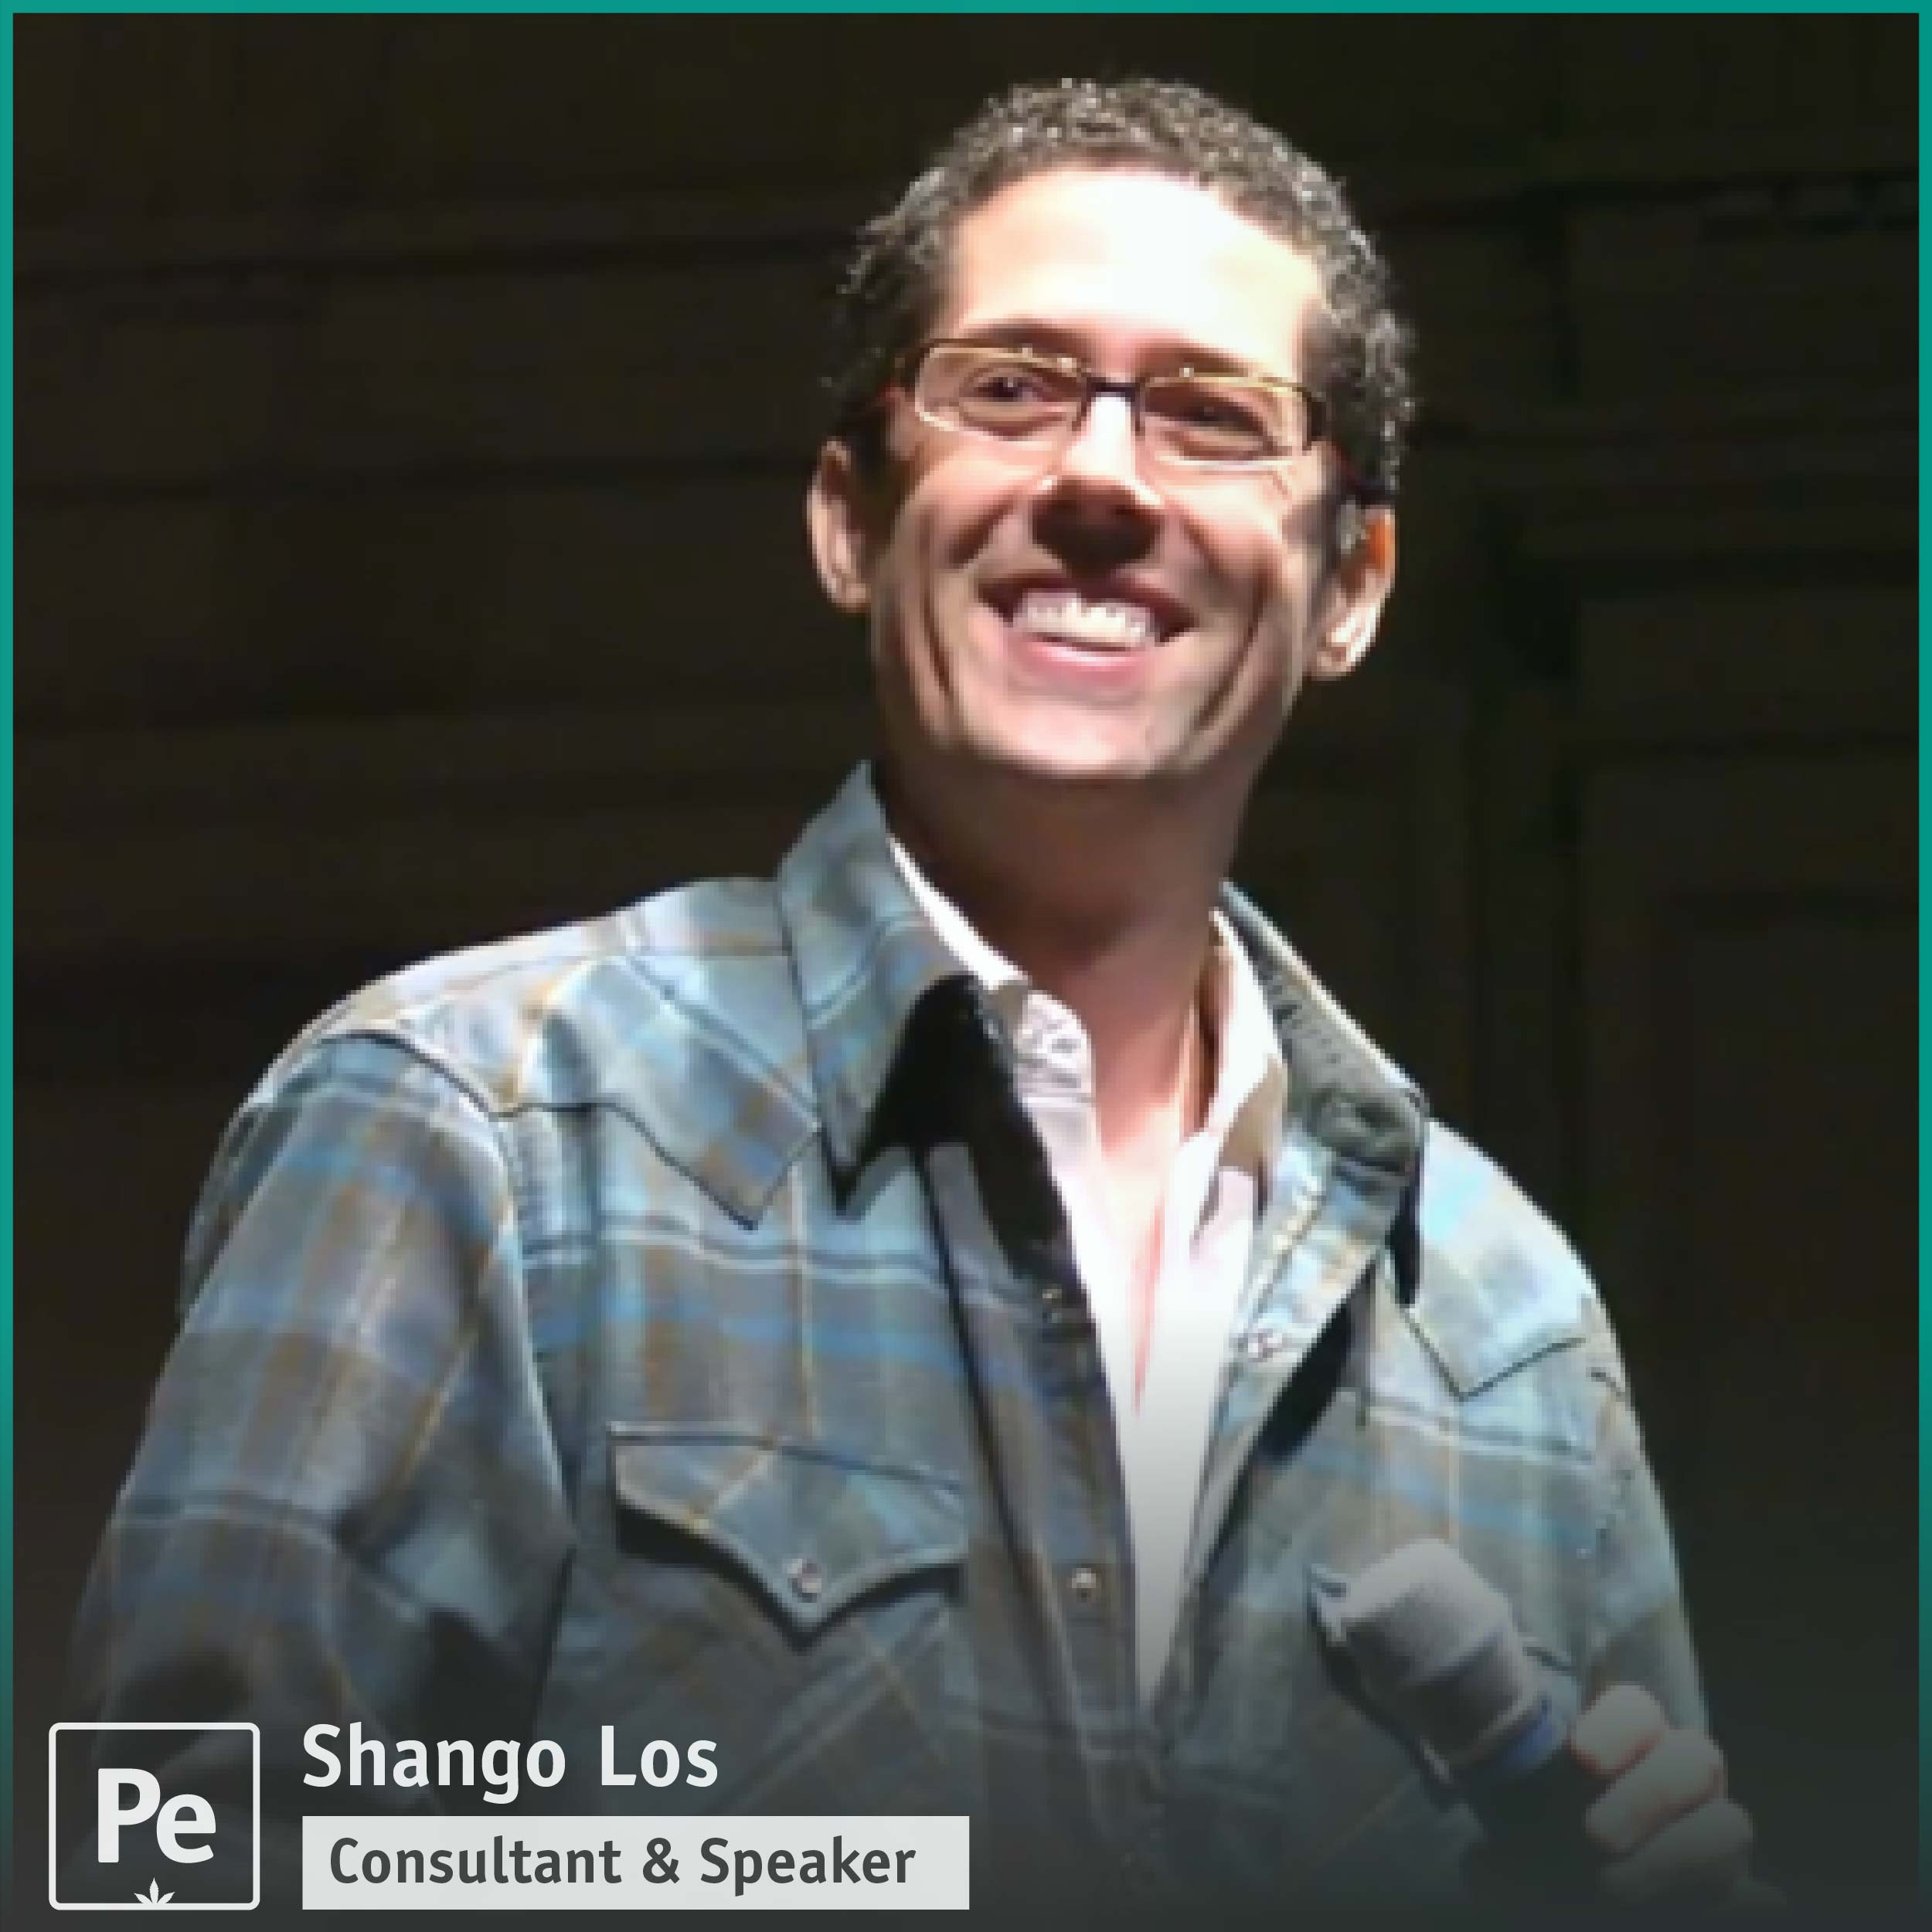 Shango Los, cannabis educator, consultant, speaker and podcast host of Shaping Fire